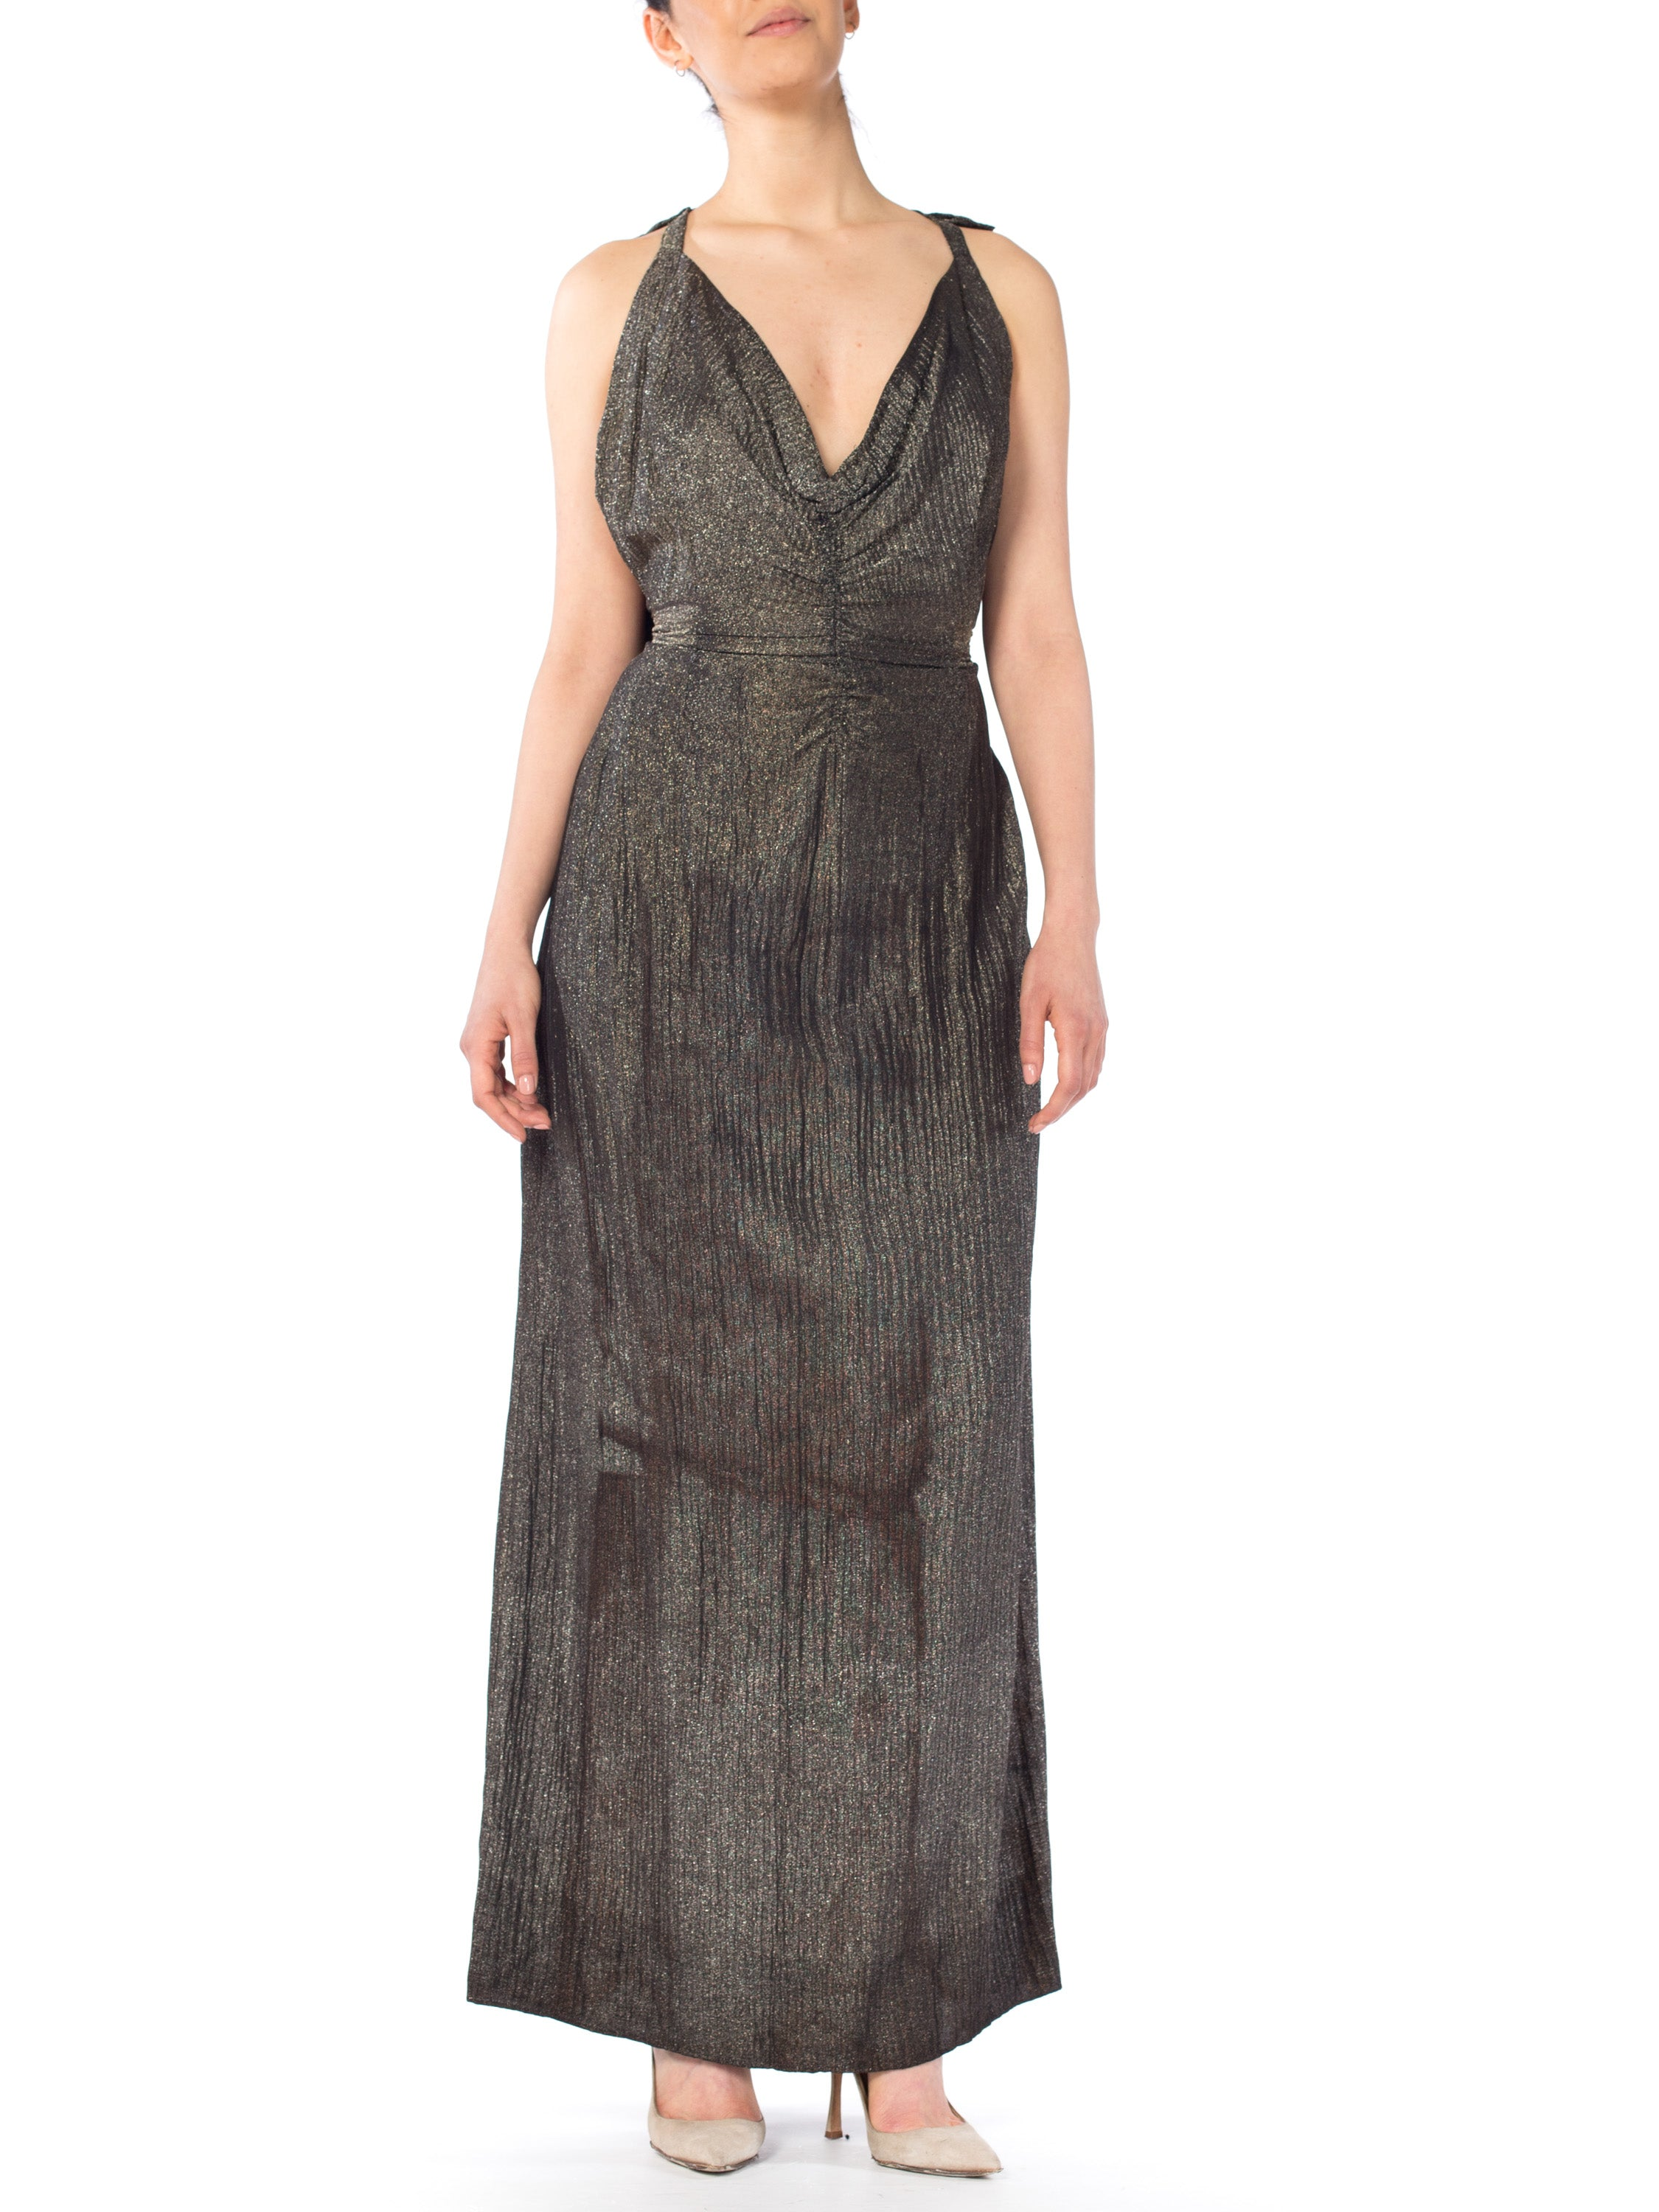 MORPHEW COLLECTION Black & Gold Antique Patina Silk Lamé  Gown With Low Back And Caped Train